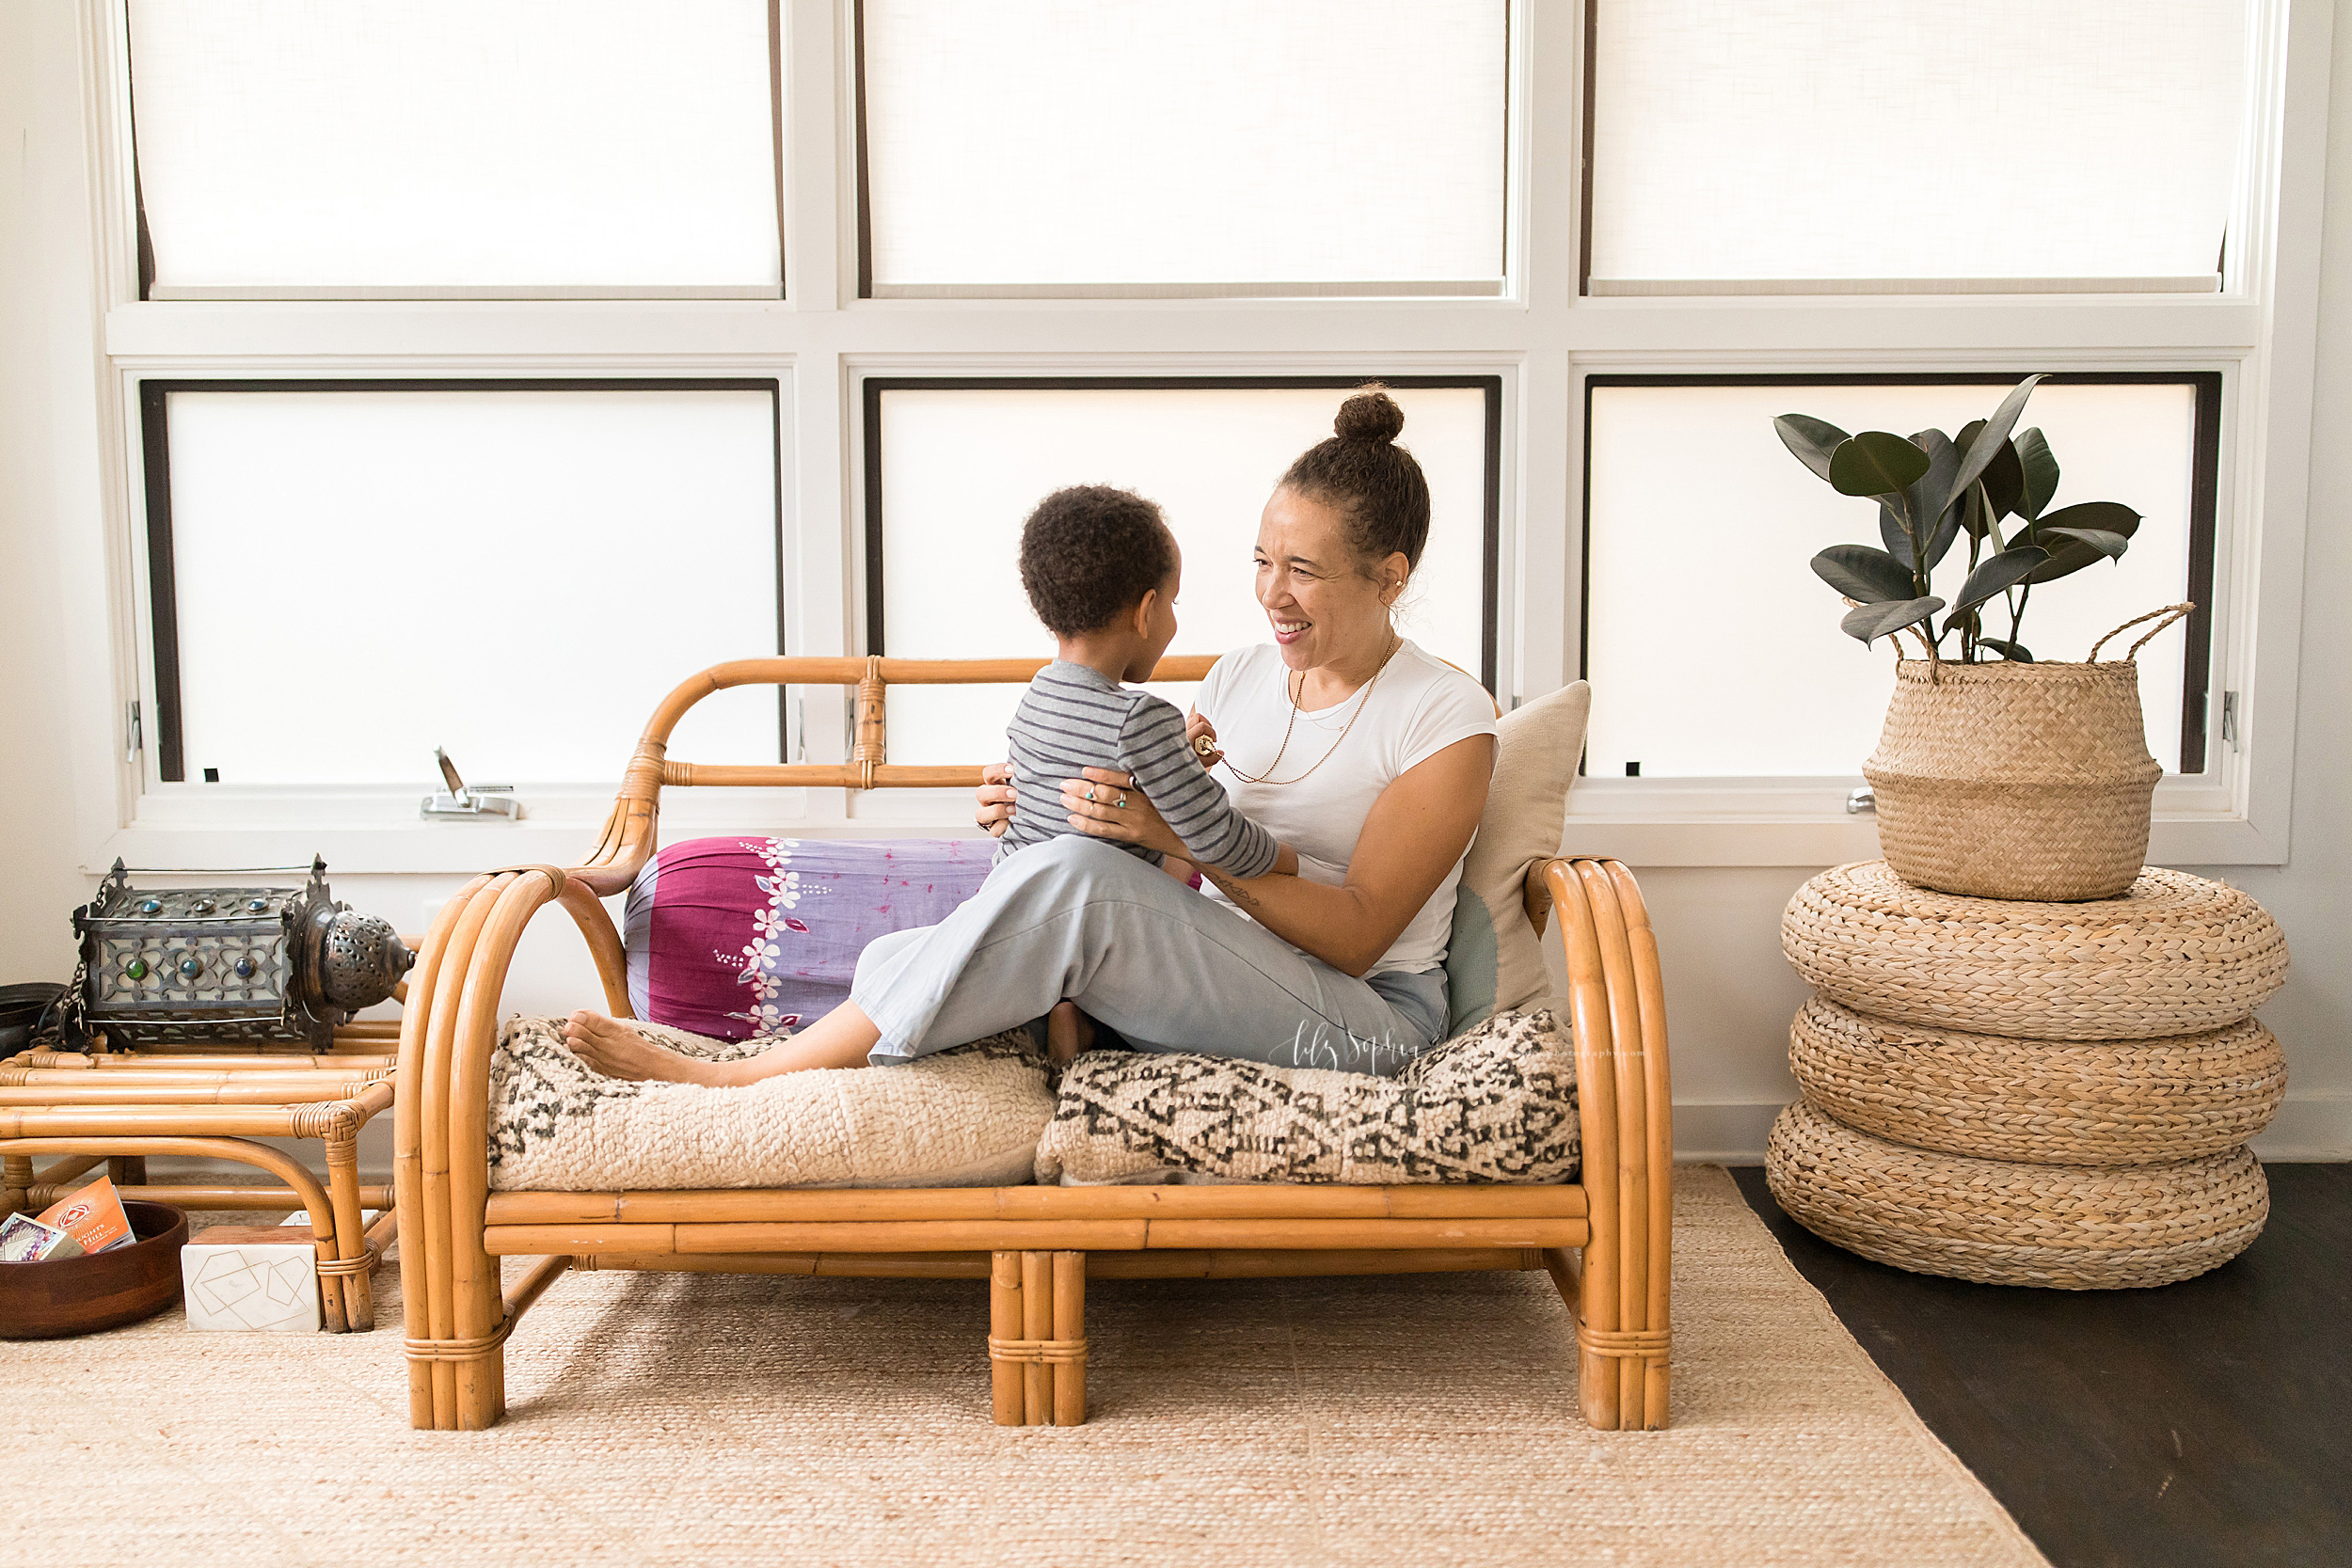 atlanta-midtown-inman-grant-park-beltline-old-fourth-ward-lily-sophia-photography-in-home-lifestyle-mommy-and-me-session-family-photographer-toddler-boy_0418.jpg